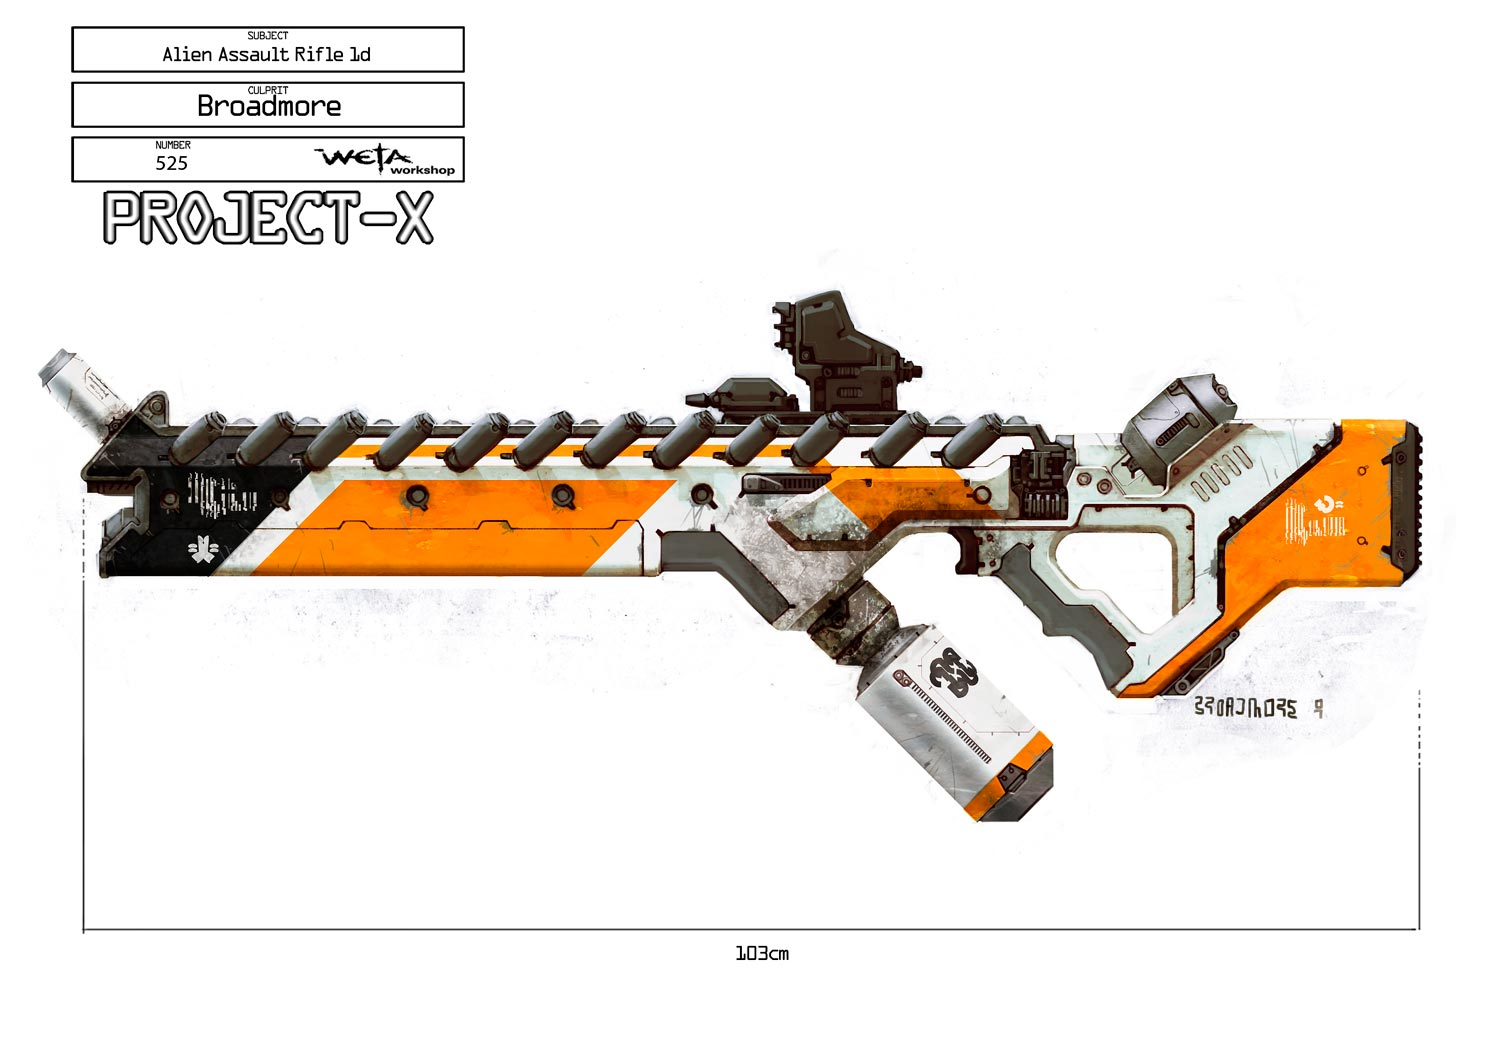 Future War Stories The Fws Armory Gauss Gun How To Build Magnetic Prawn Repeater Rifle Is Most Likely A Based On Design And Damage